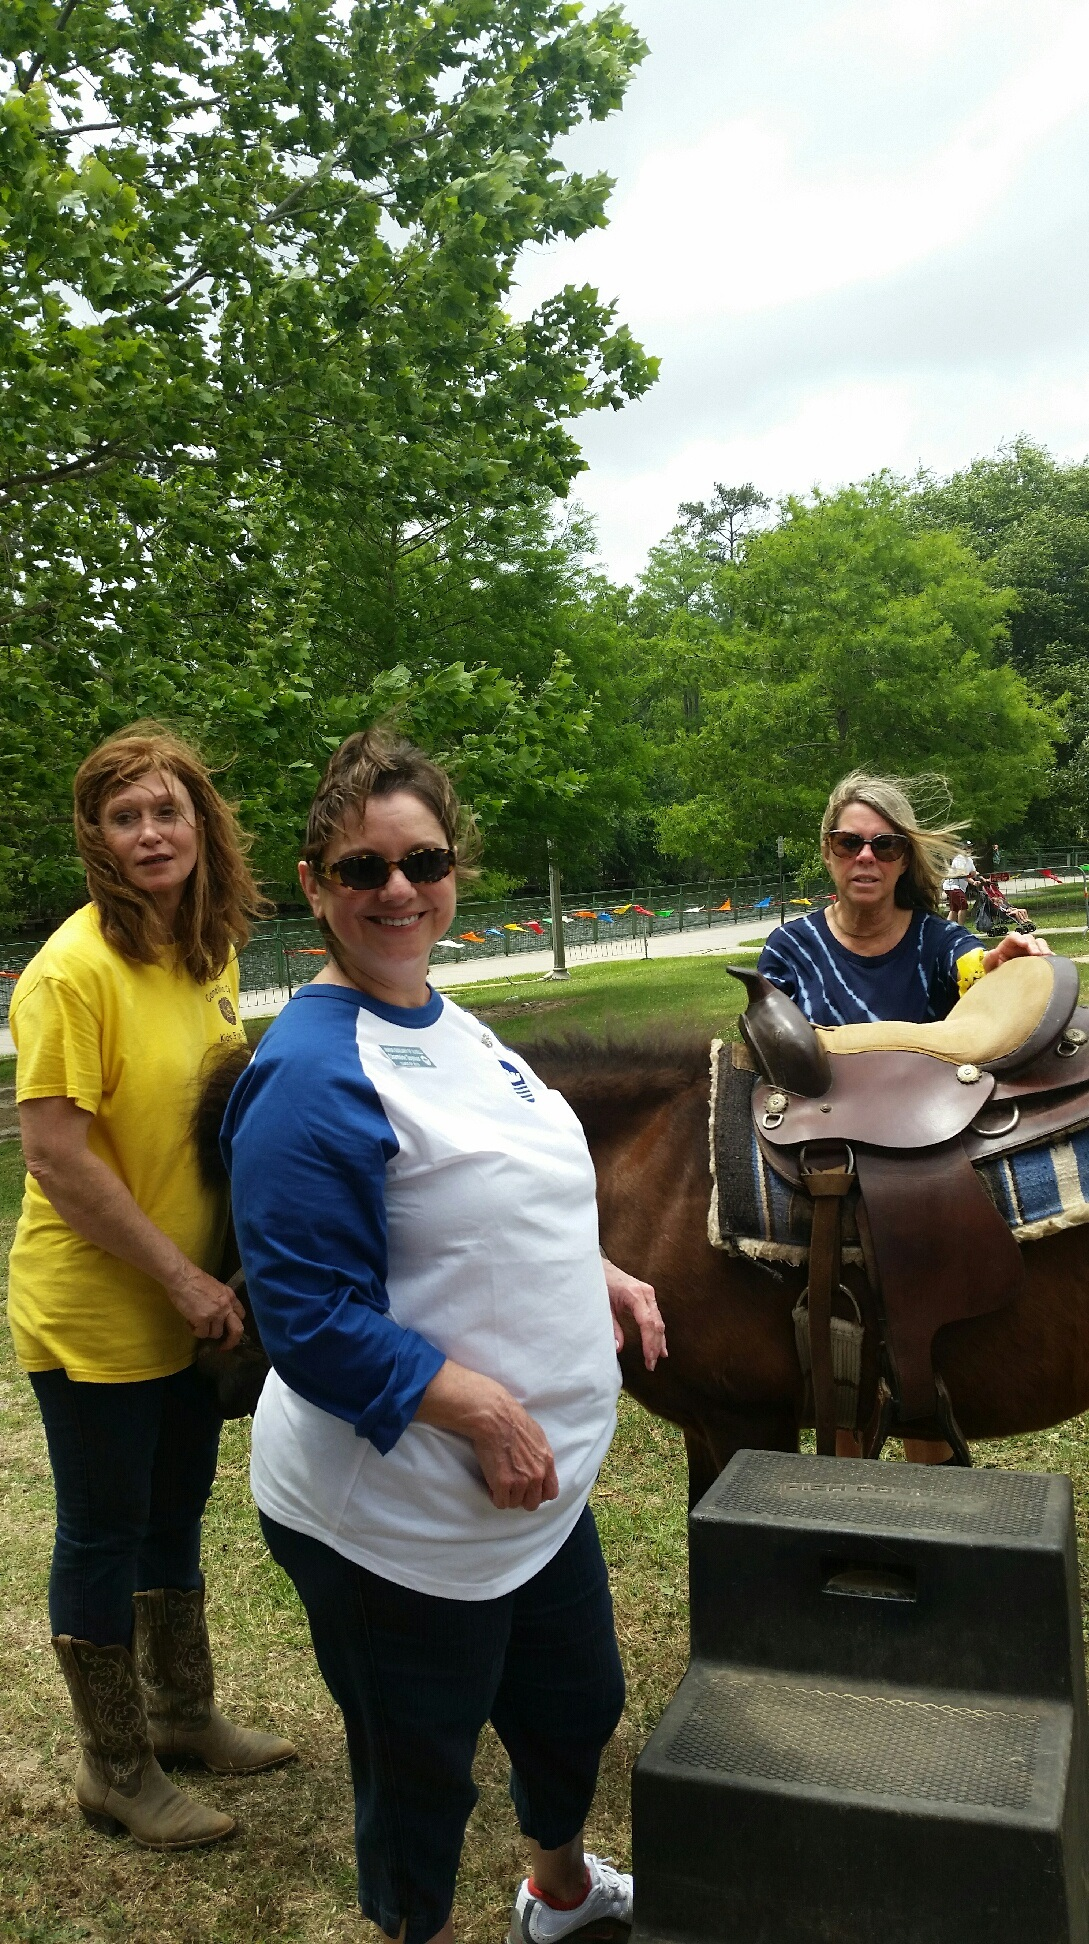 Charmaine Seymour helping with the pony rides at Kid's Fest 2017.